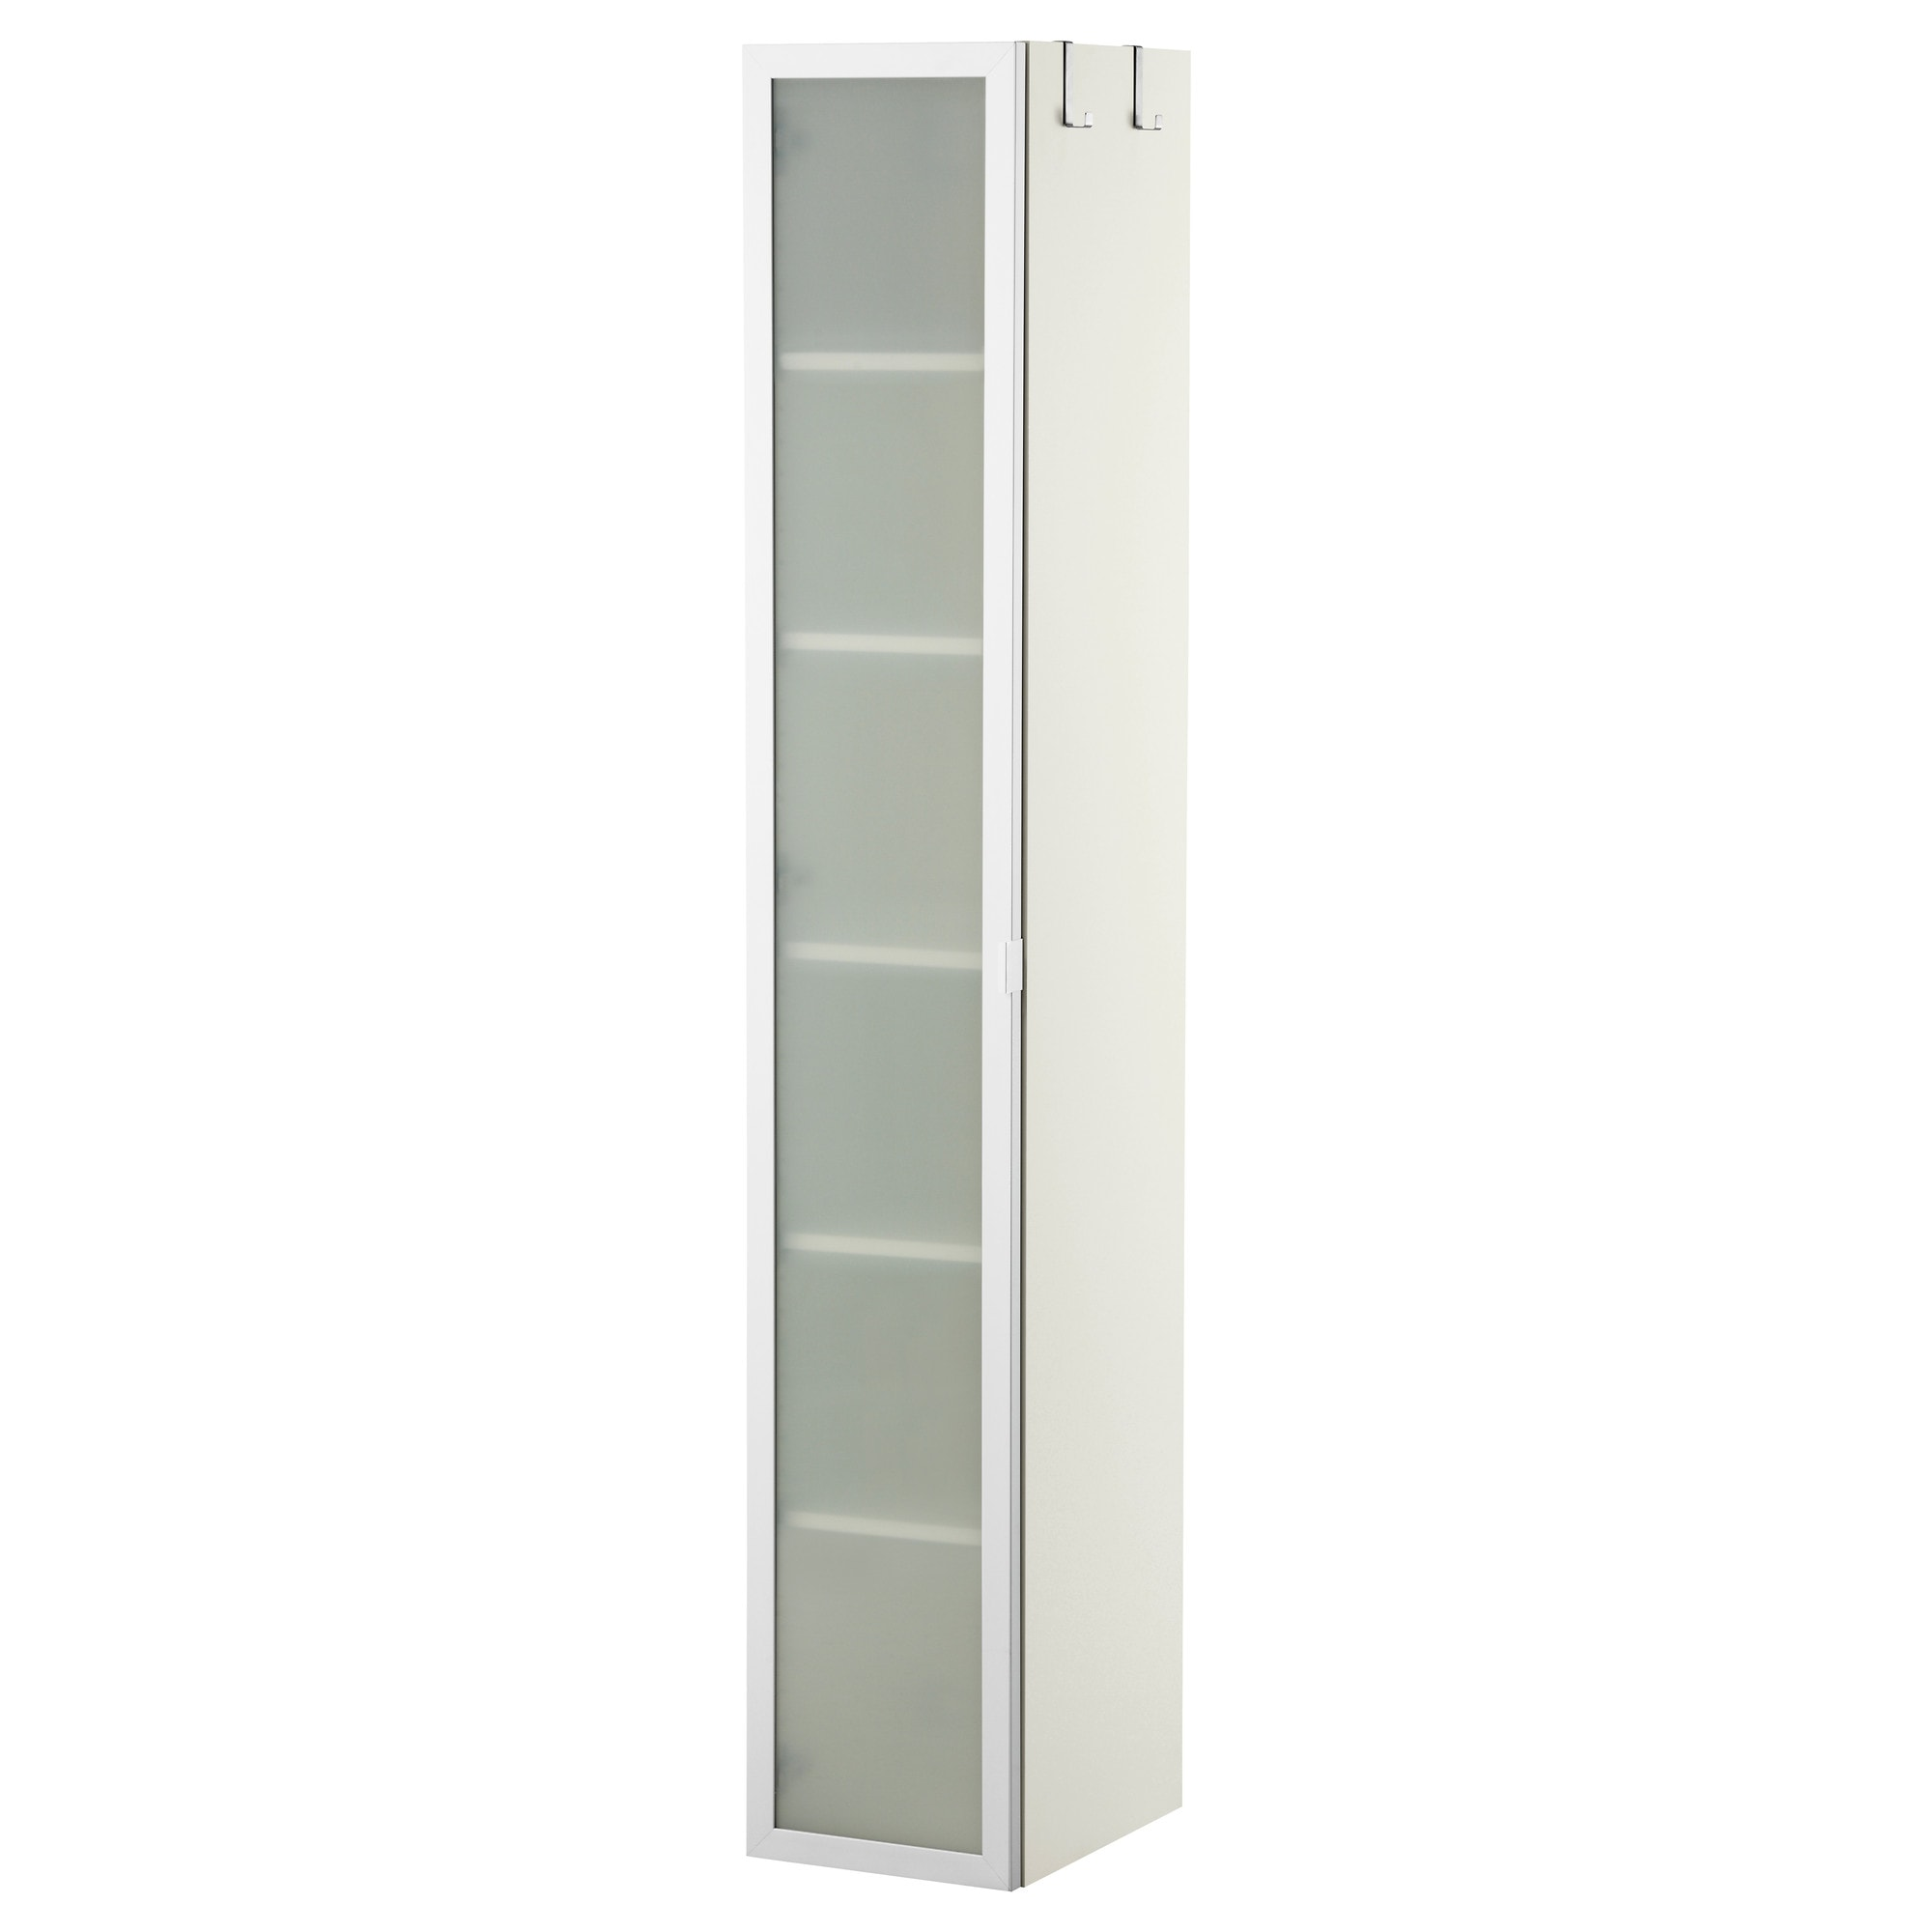 Tallboy Bathroom Cabinets Bathroom Cabinets High Tall Ikea